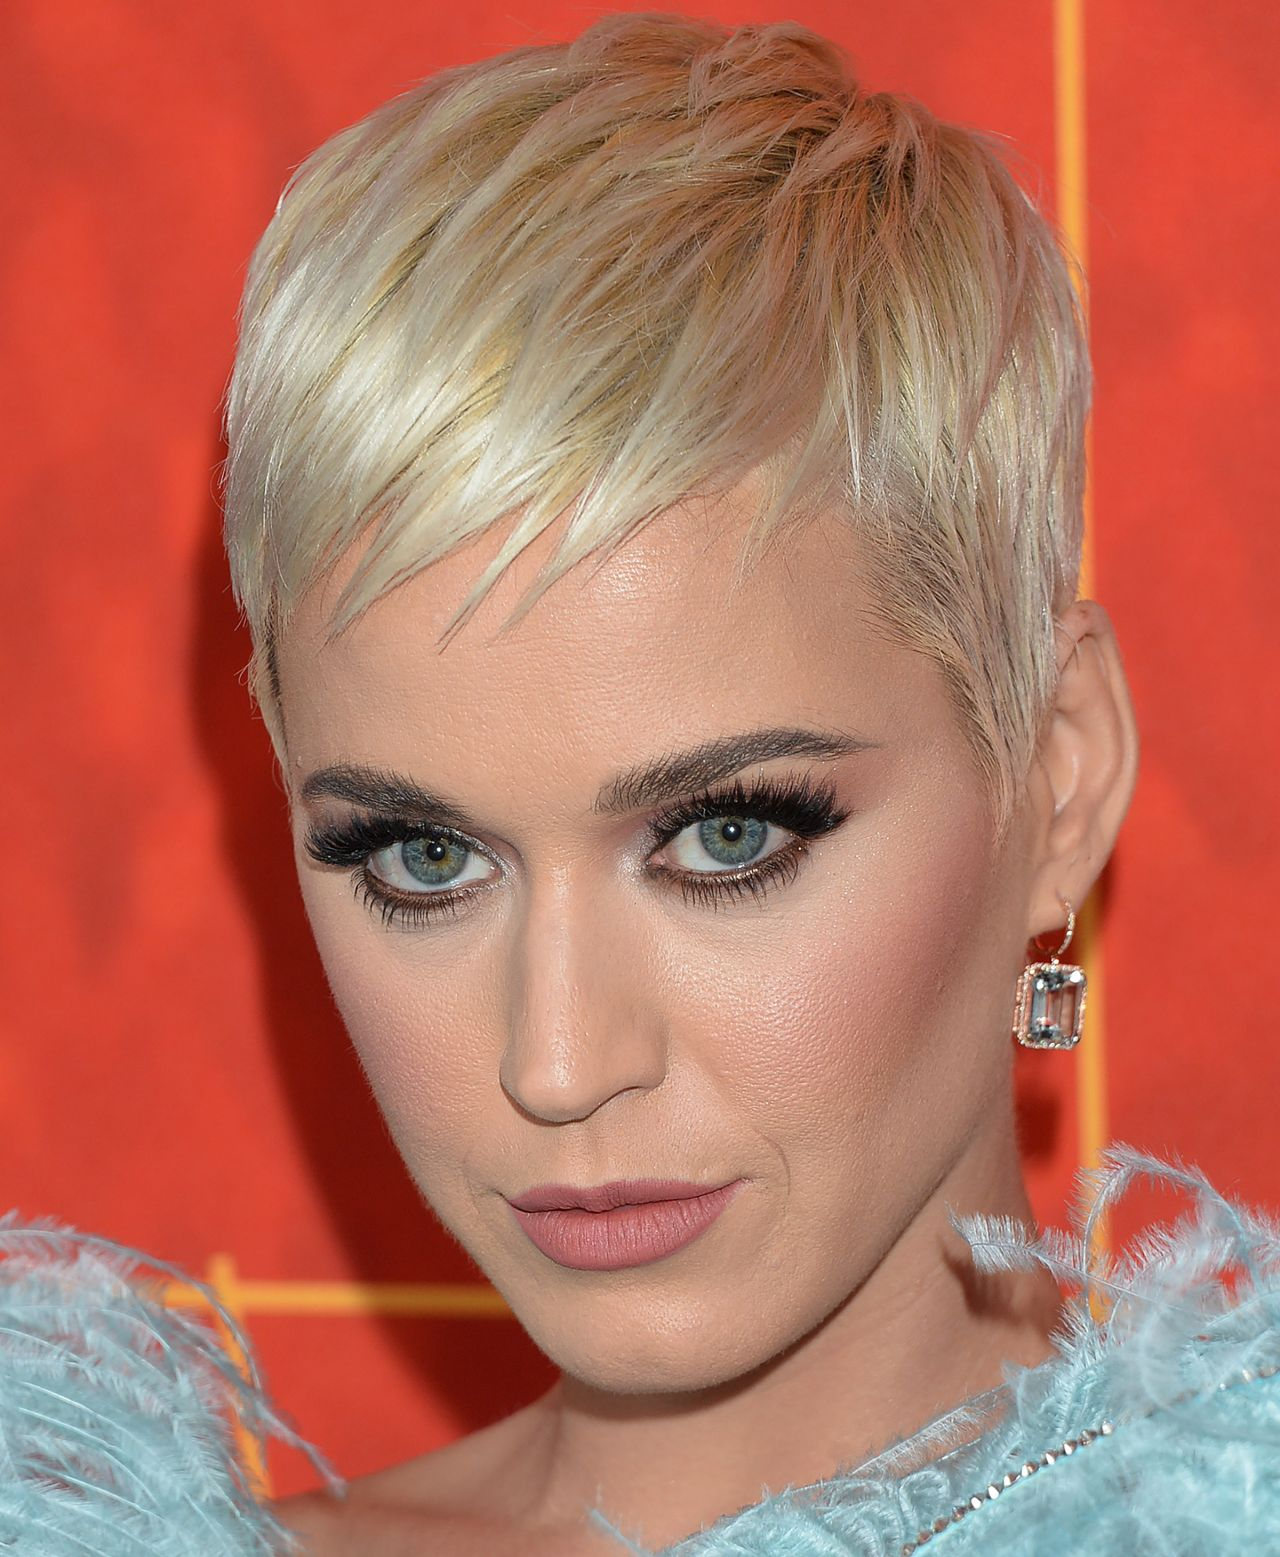 Katy Perry Tops The 2018 List For Highest Paid Female ...